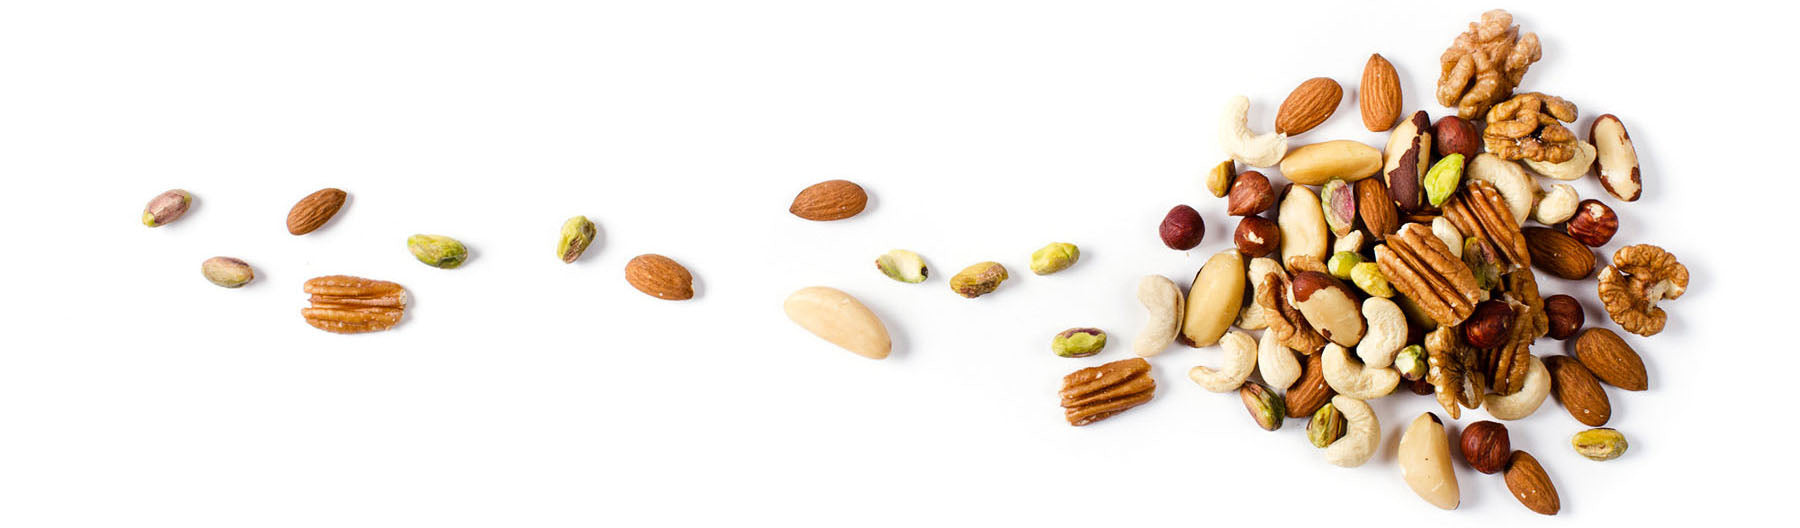 Trail of Organic Activated Mixed Nuts